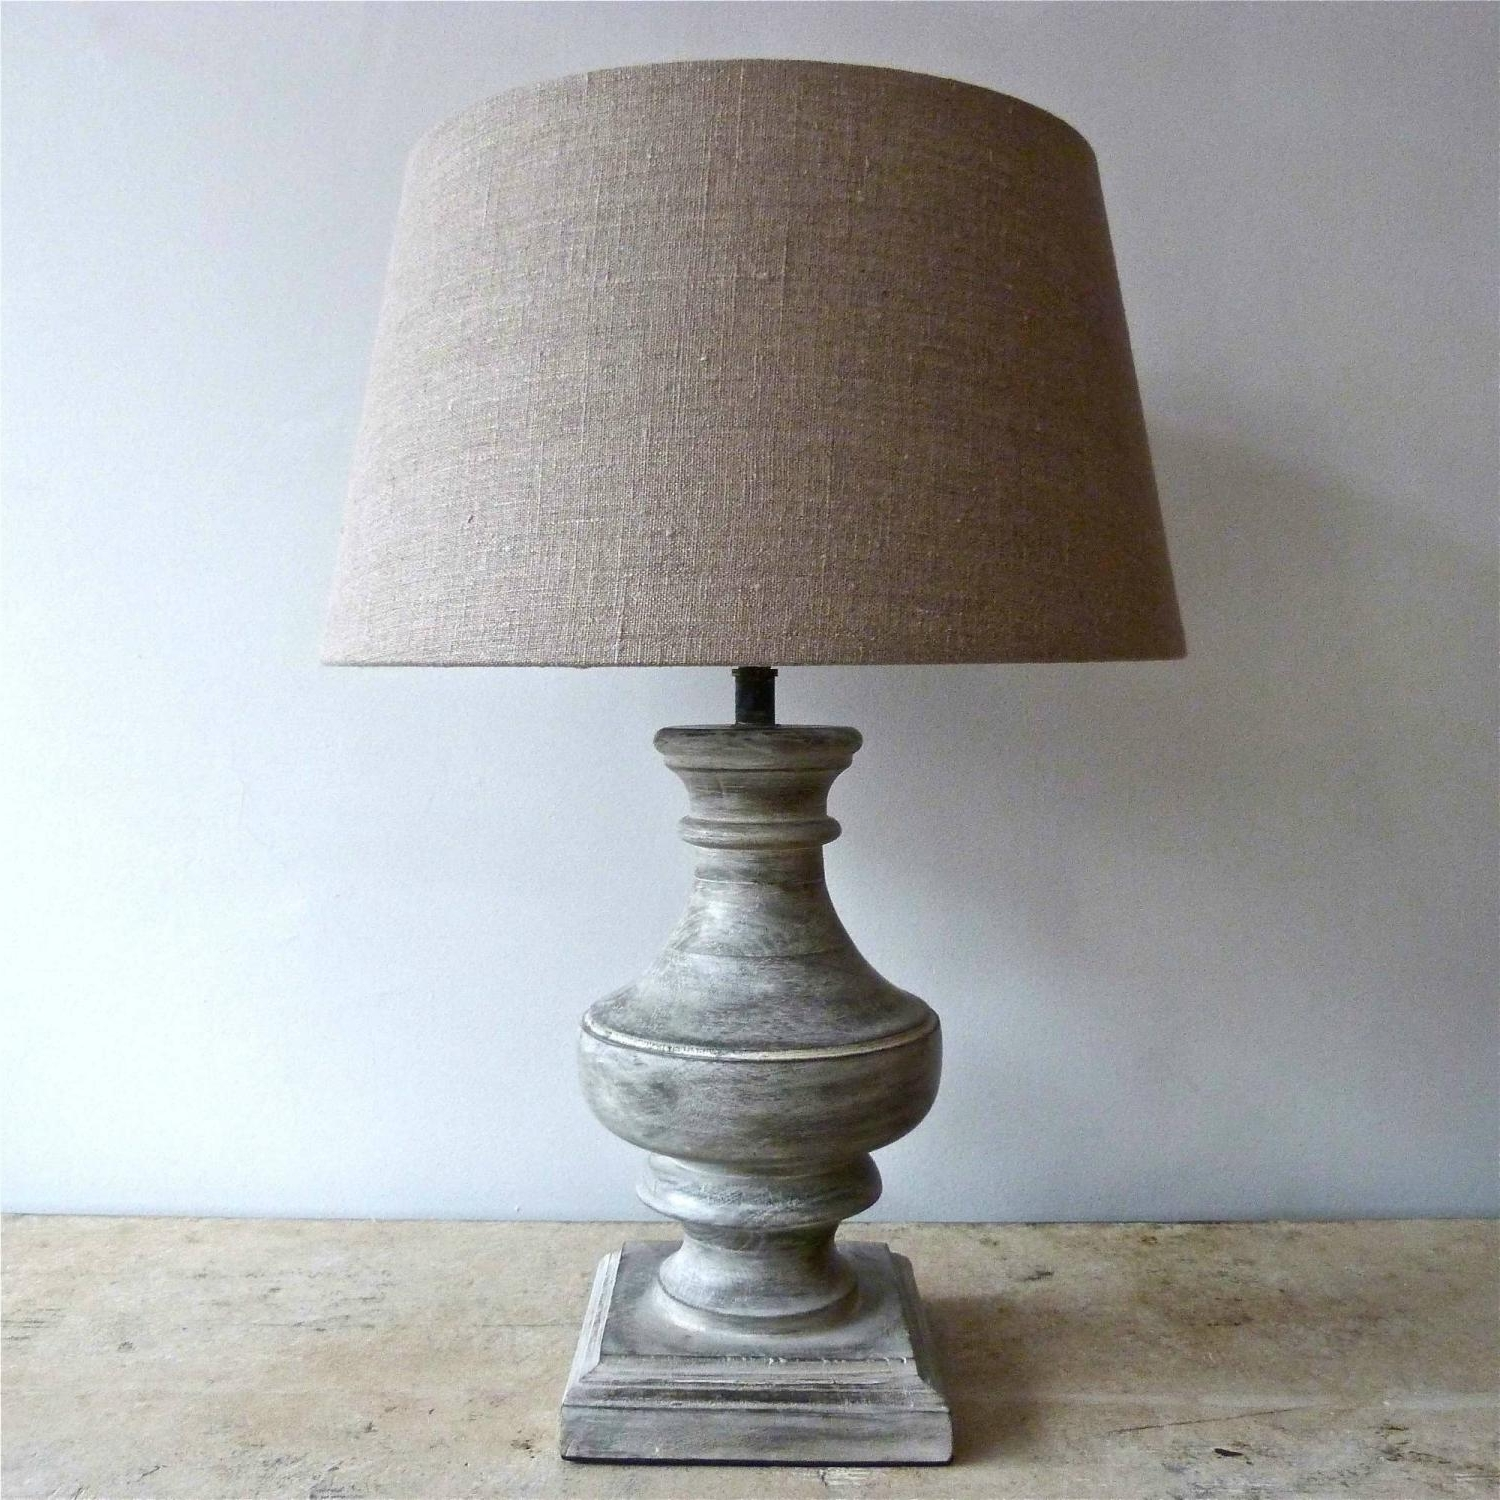 Newest Wood Table Lamps For Living Room With Regard To Furniture : Wooden Table Lamps Stunning Wood Veneer Lamp Shade (View 8 of 20)